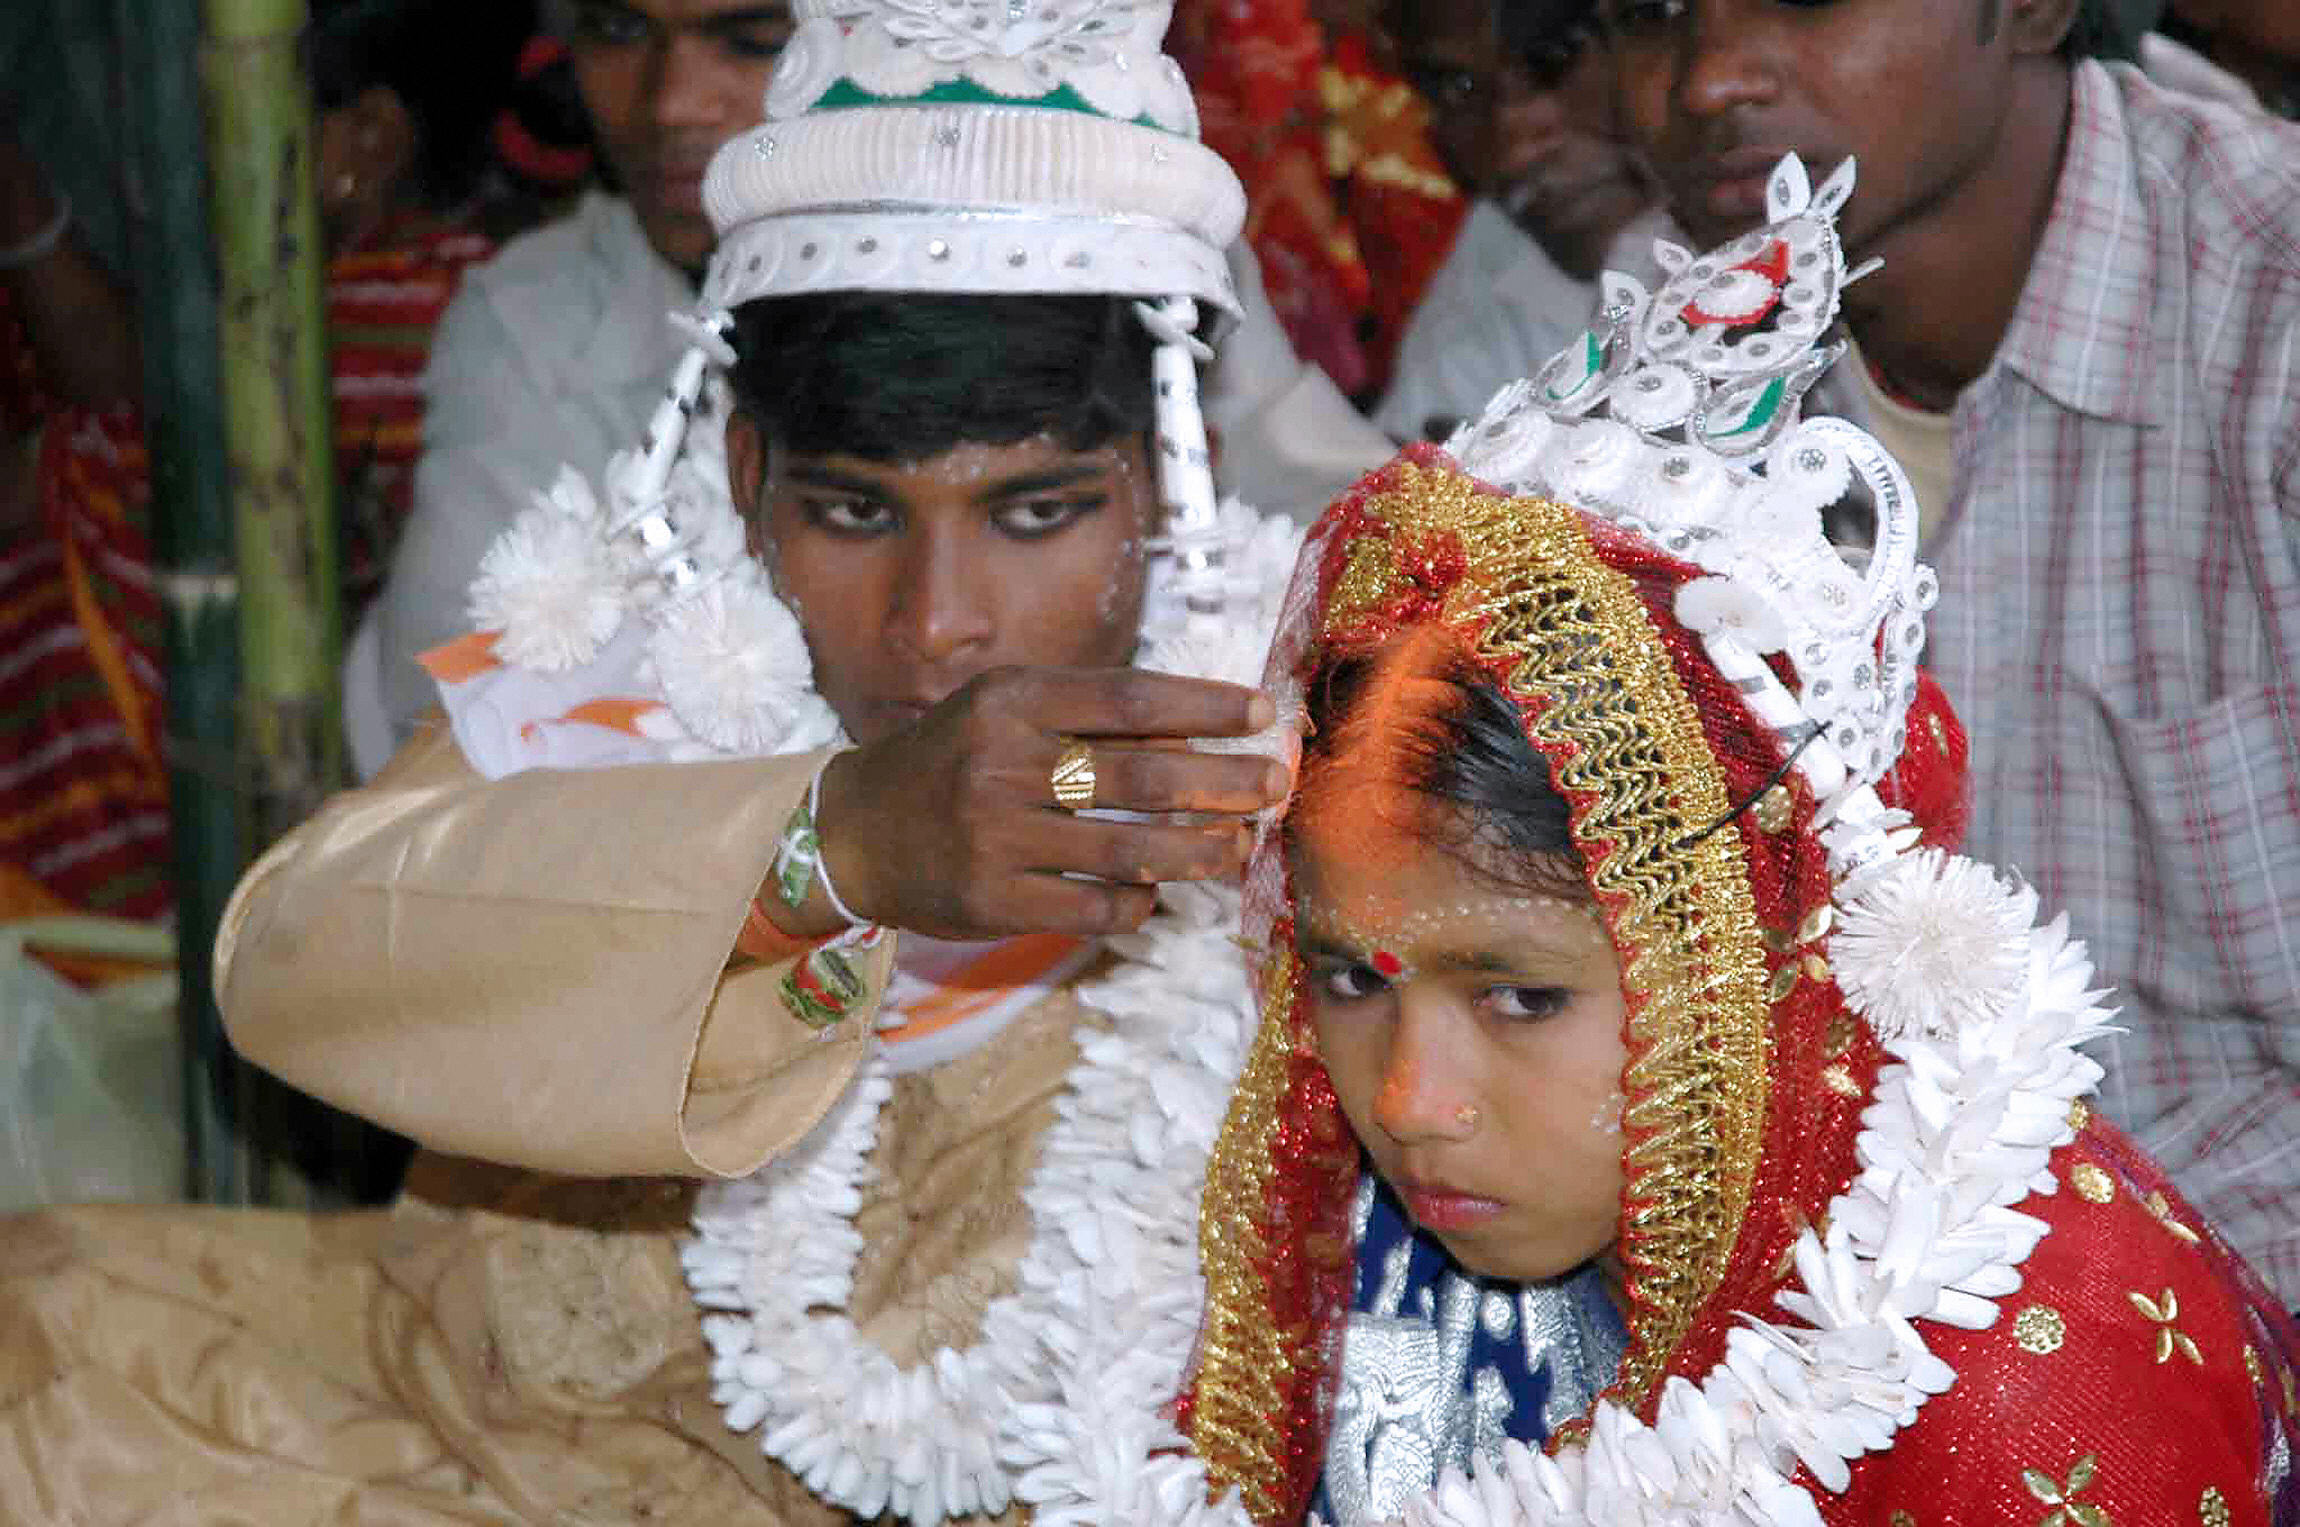 Indian groom puts vermilion on the forehead of his underage bride during a mass marriage in Malda, India 02 March 2006. (STRDEL/AFP/Getty Images)